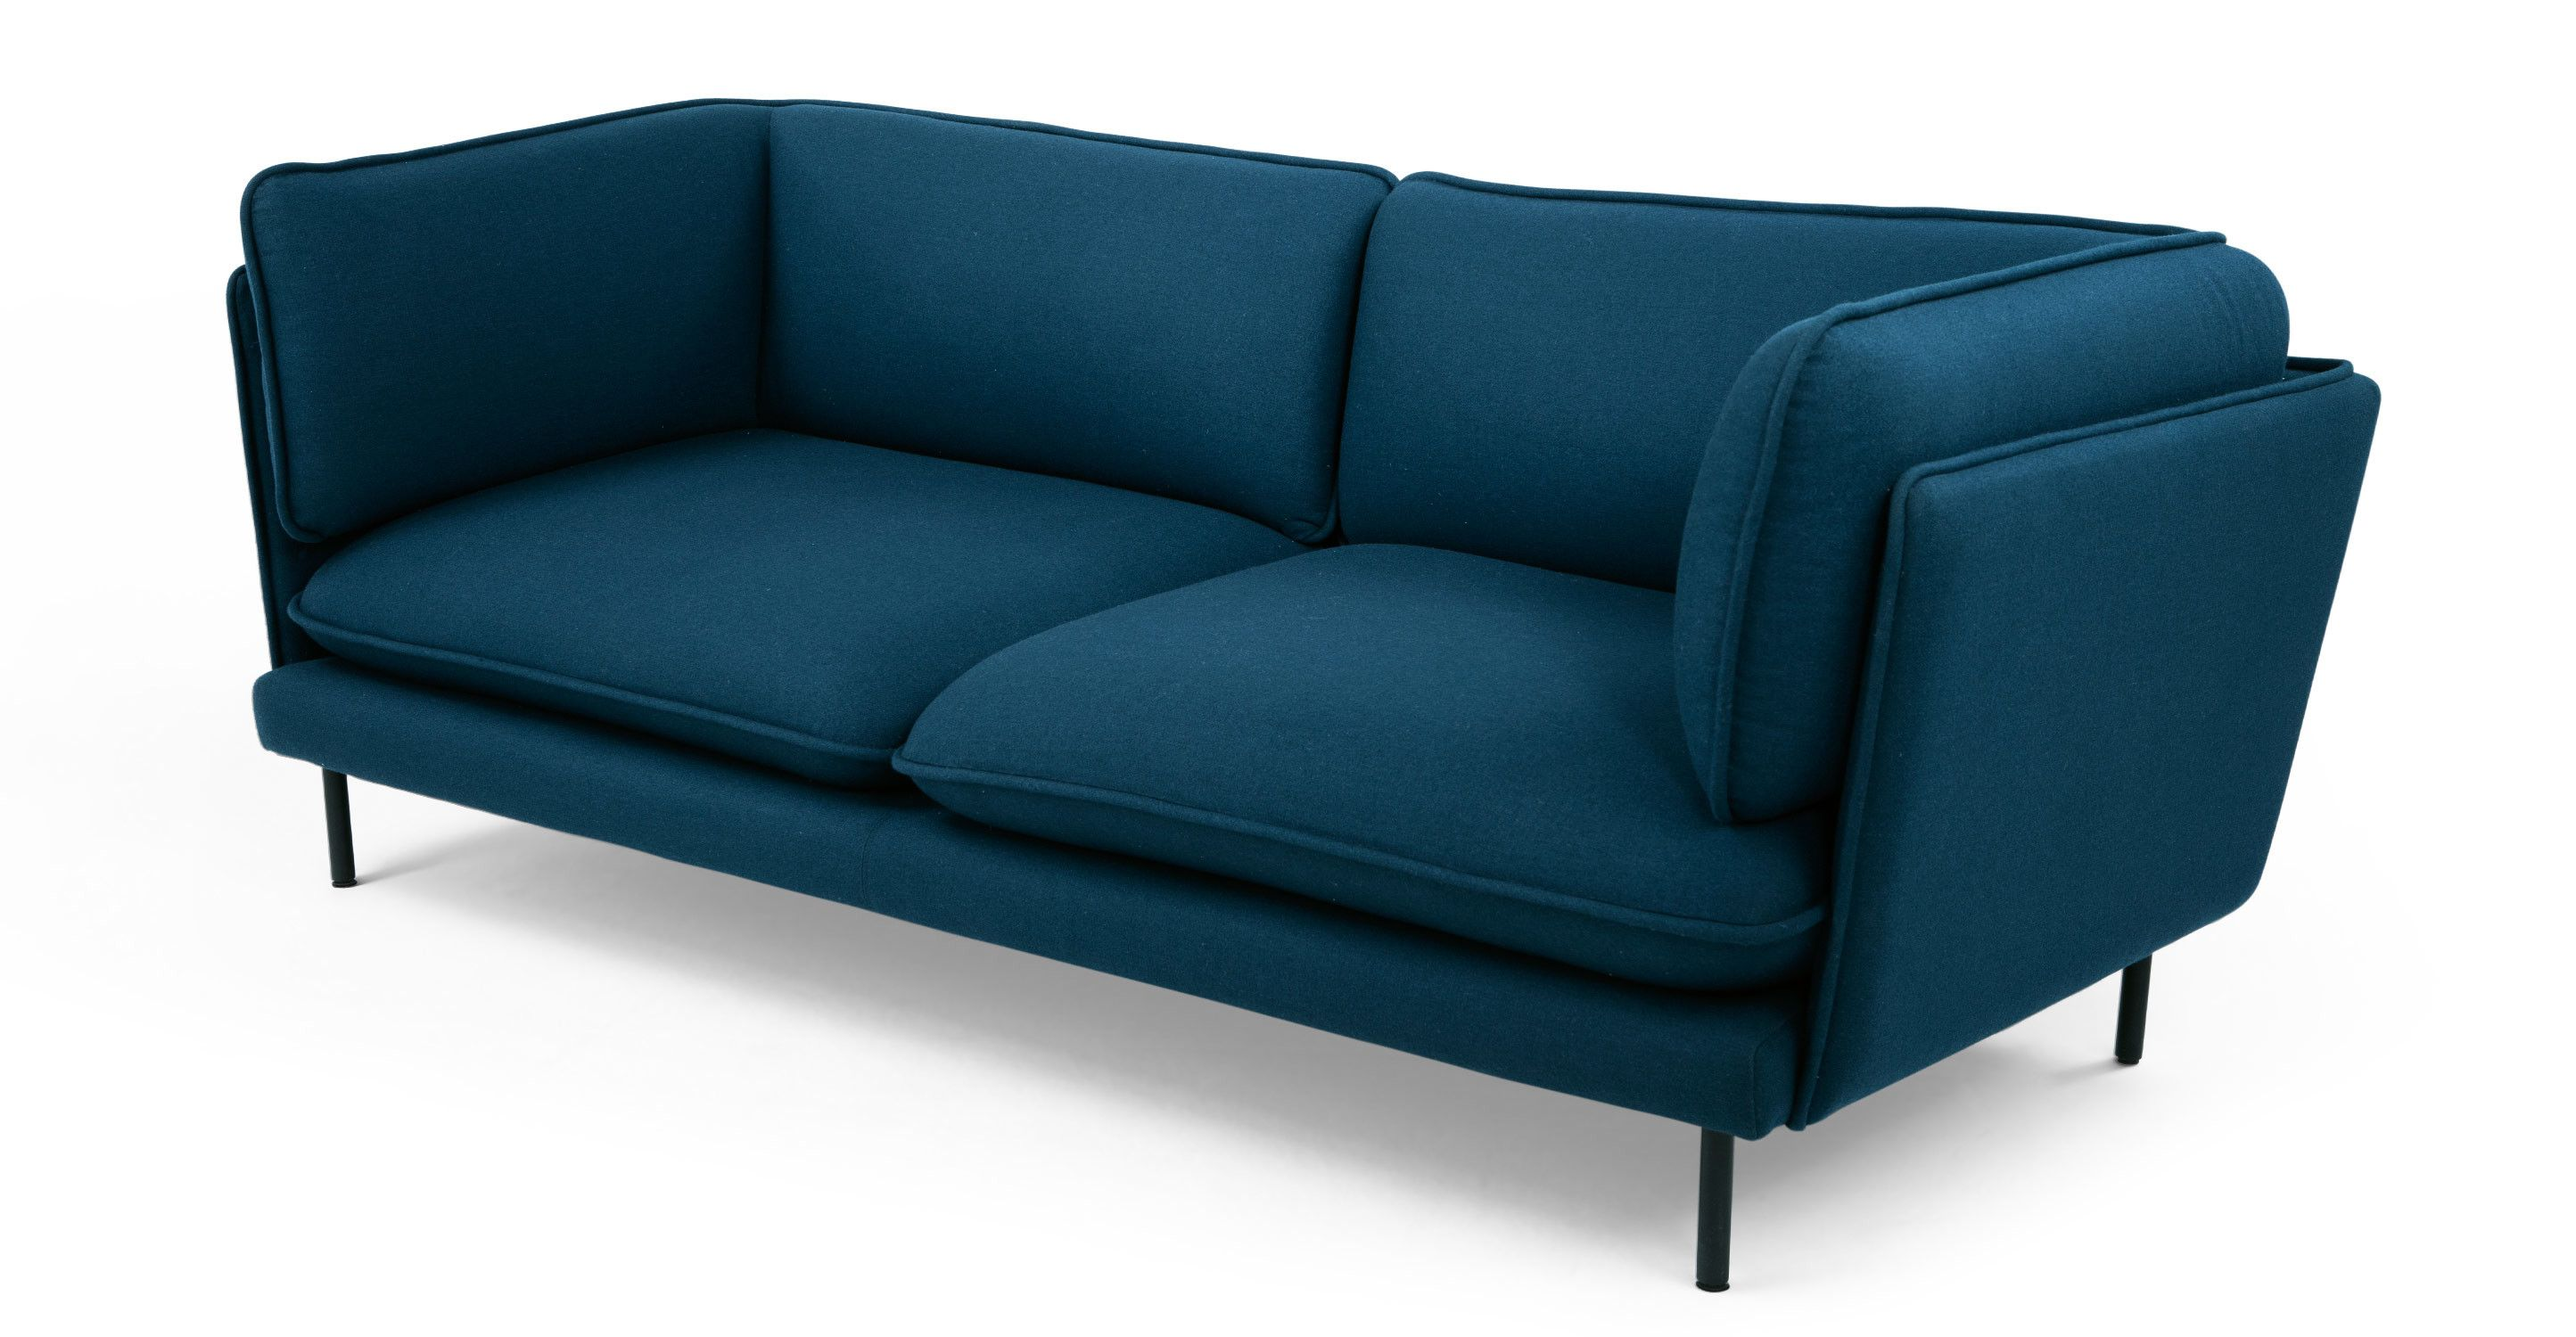 Wes 3 Seater Sofa Petrol Teal from Made Green Blue Express